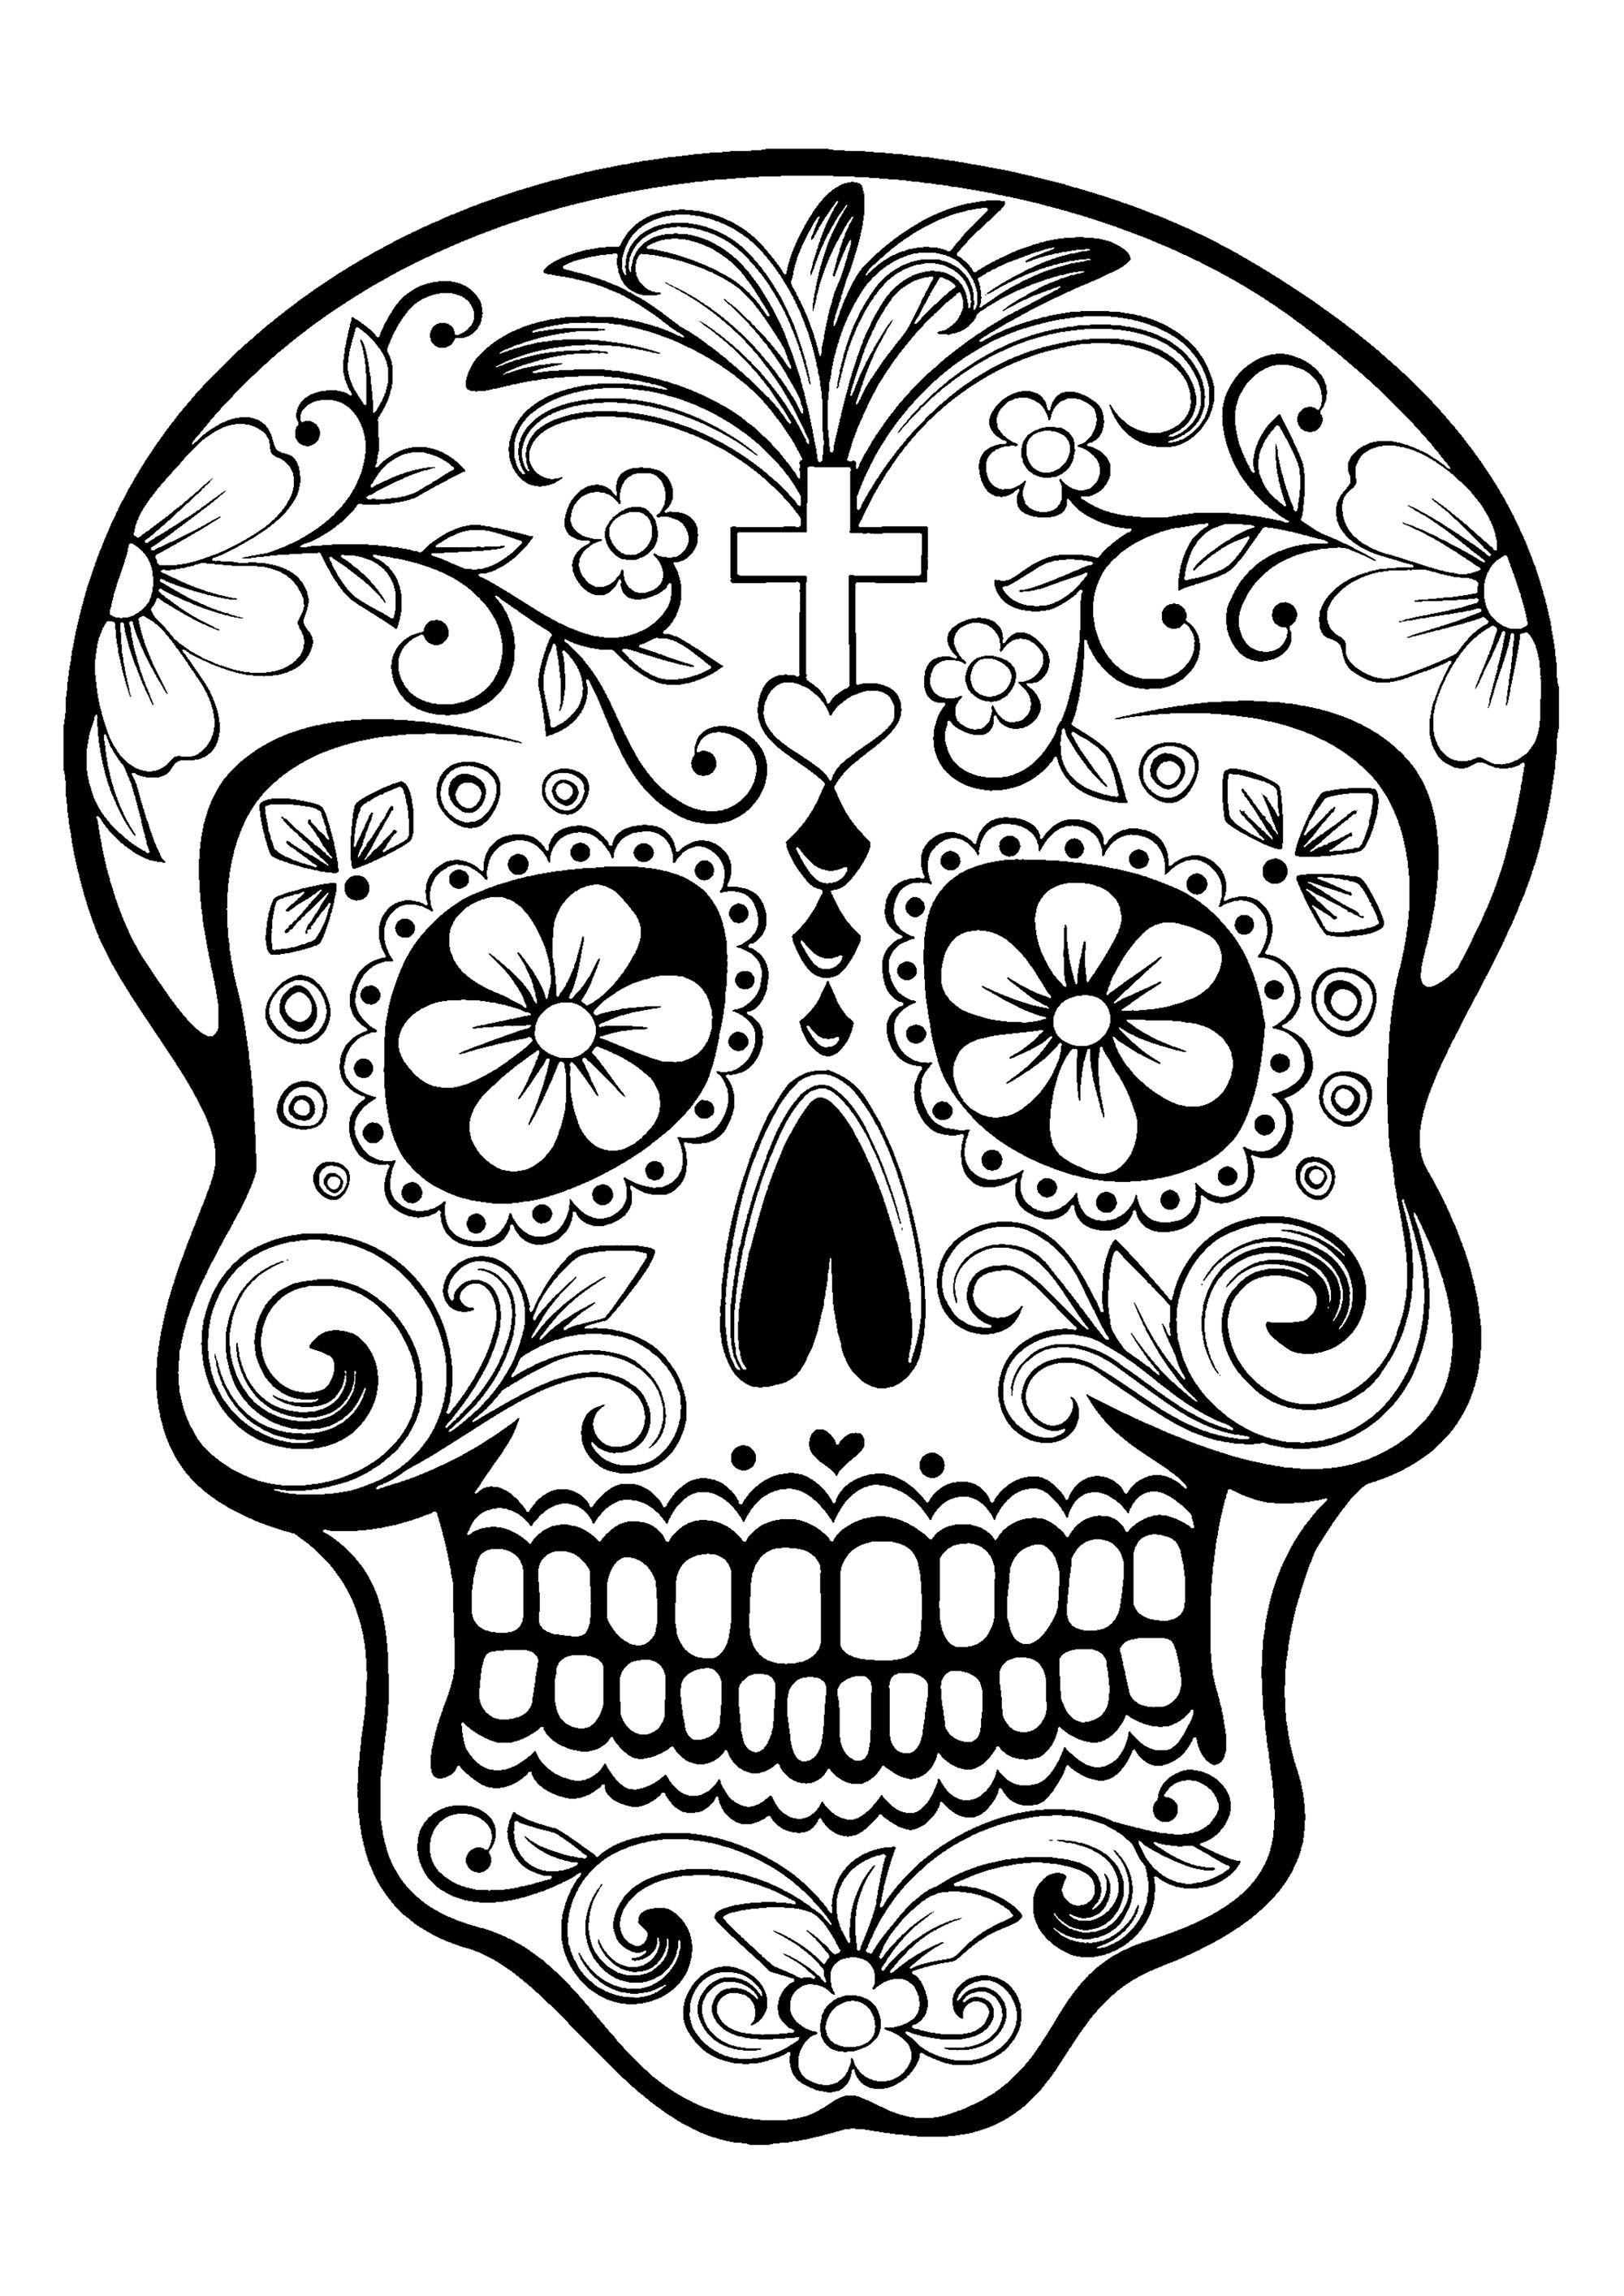 Santa Muerte Coloring Pages With El D A De Los Muertos Day Of The Dead Page Skull 1